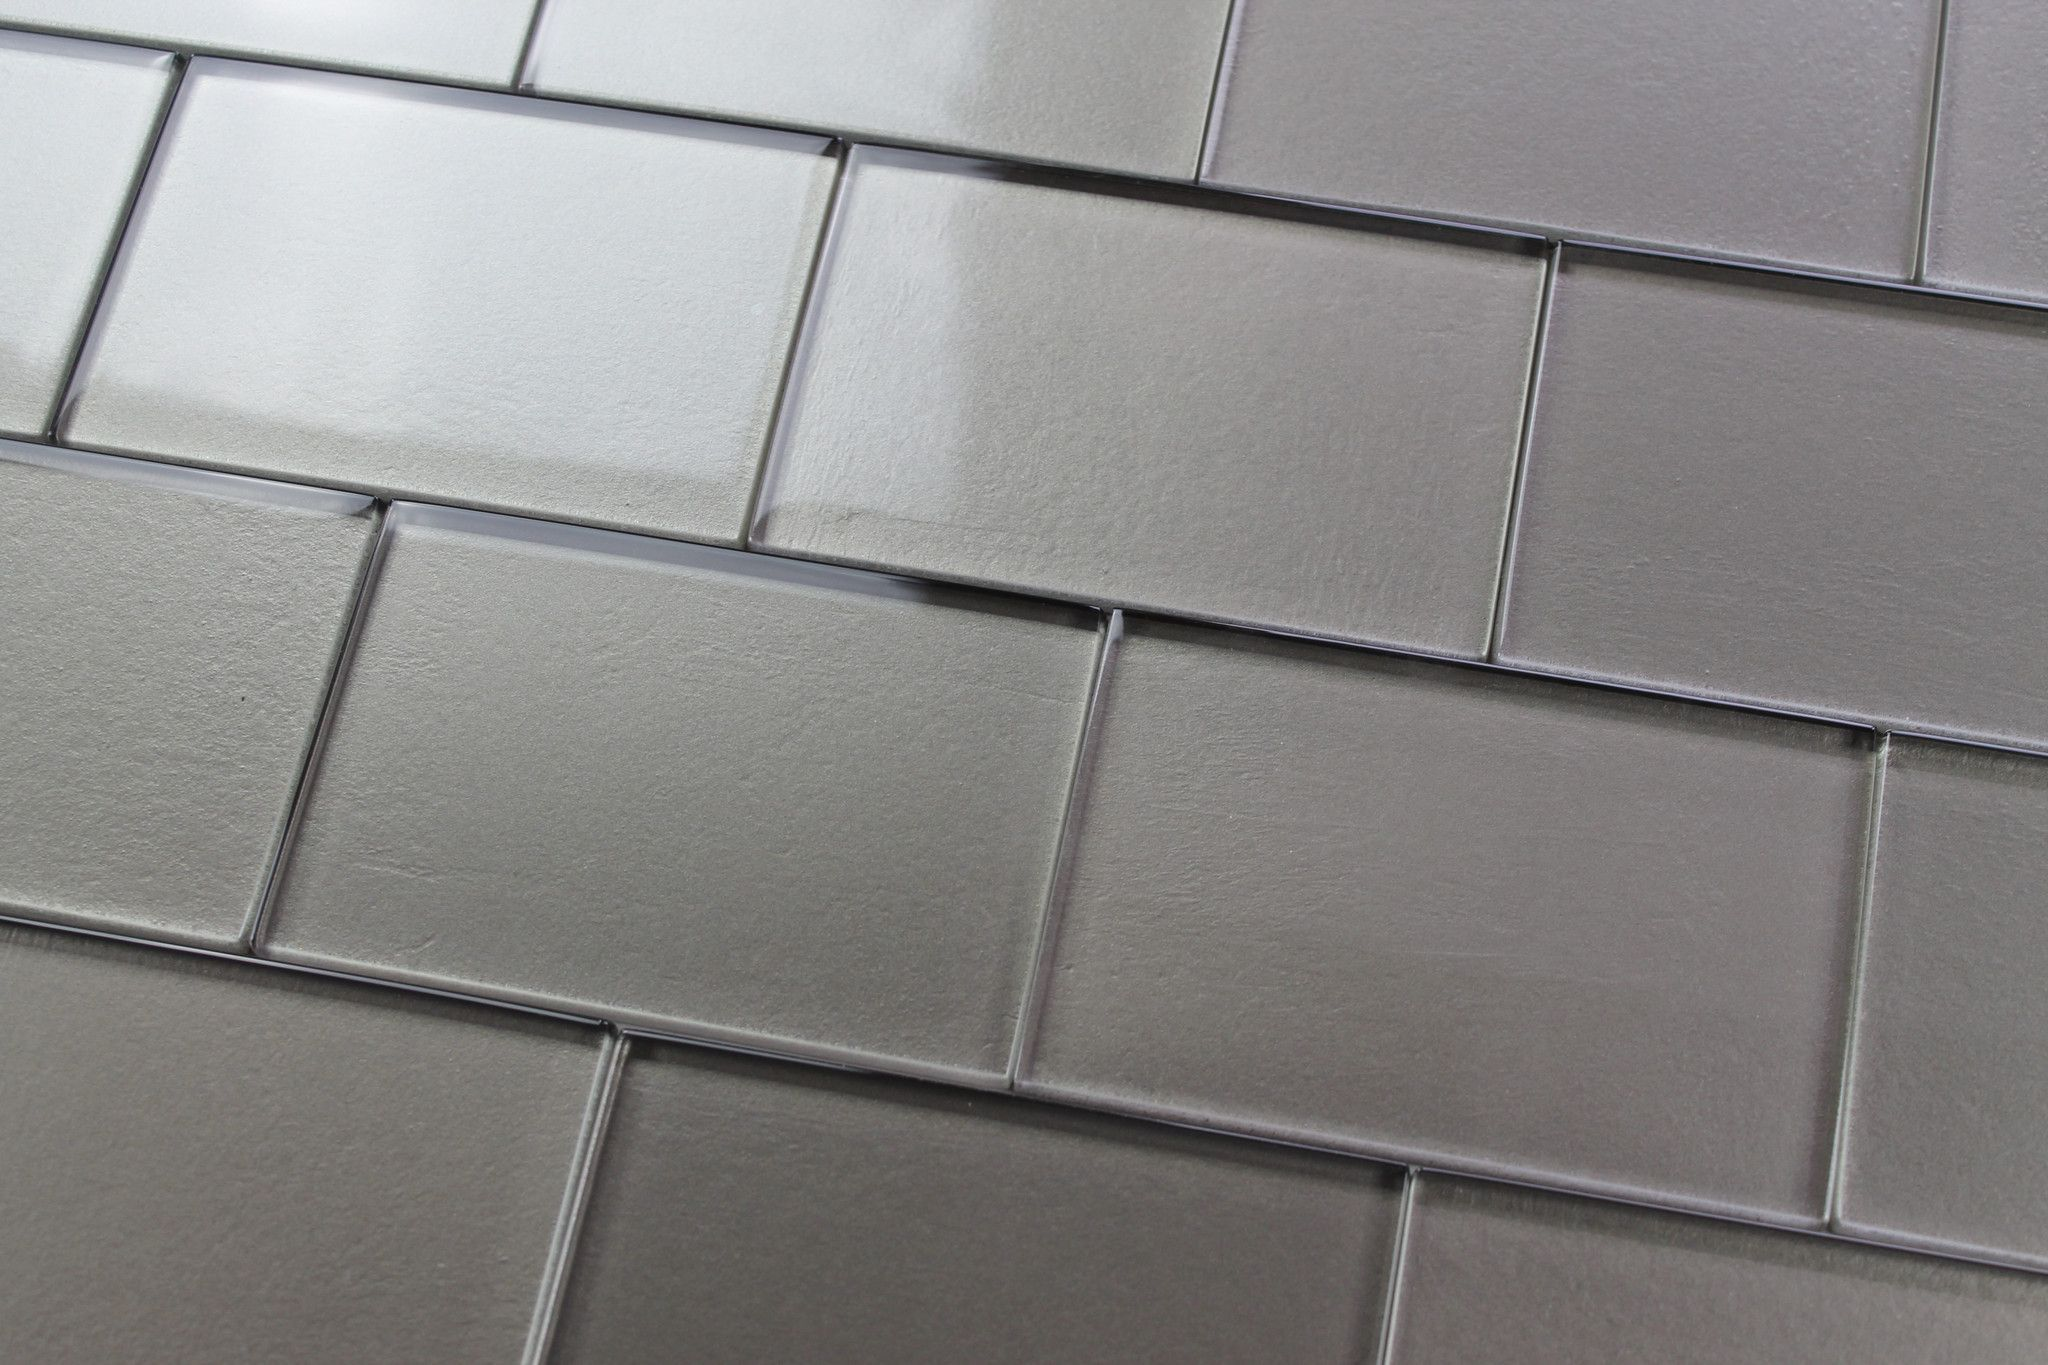 Elements Forest 4x6 Glass Subway Tiles Subway Tiles Glass And Ash